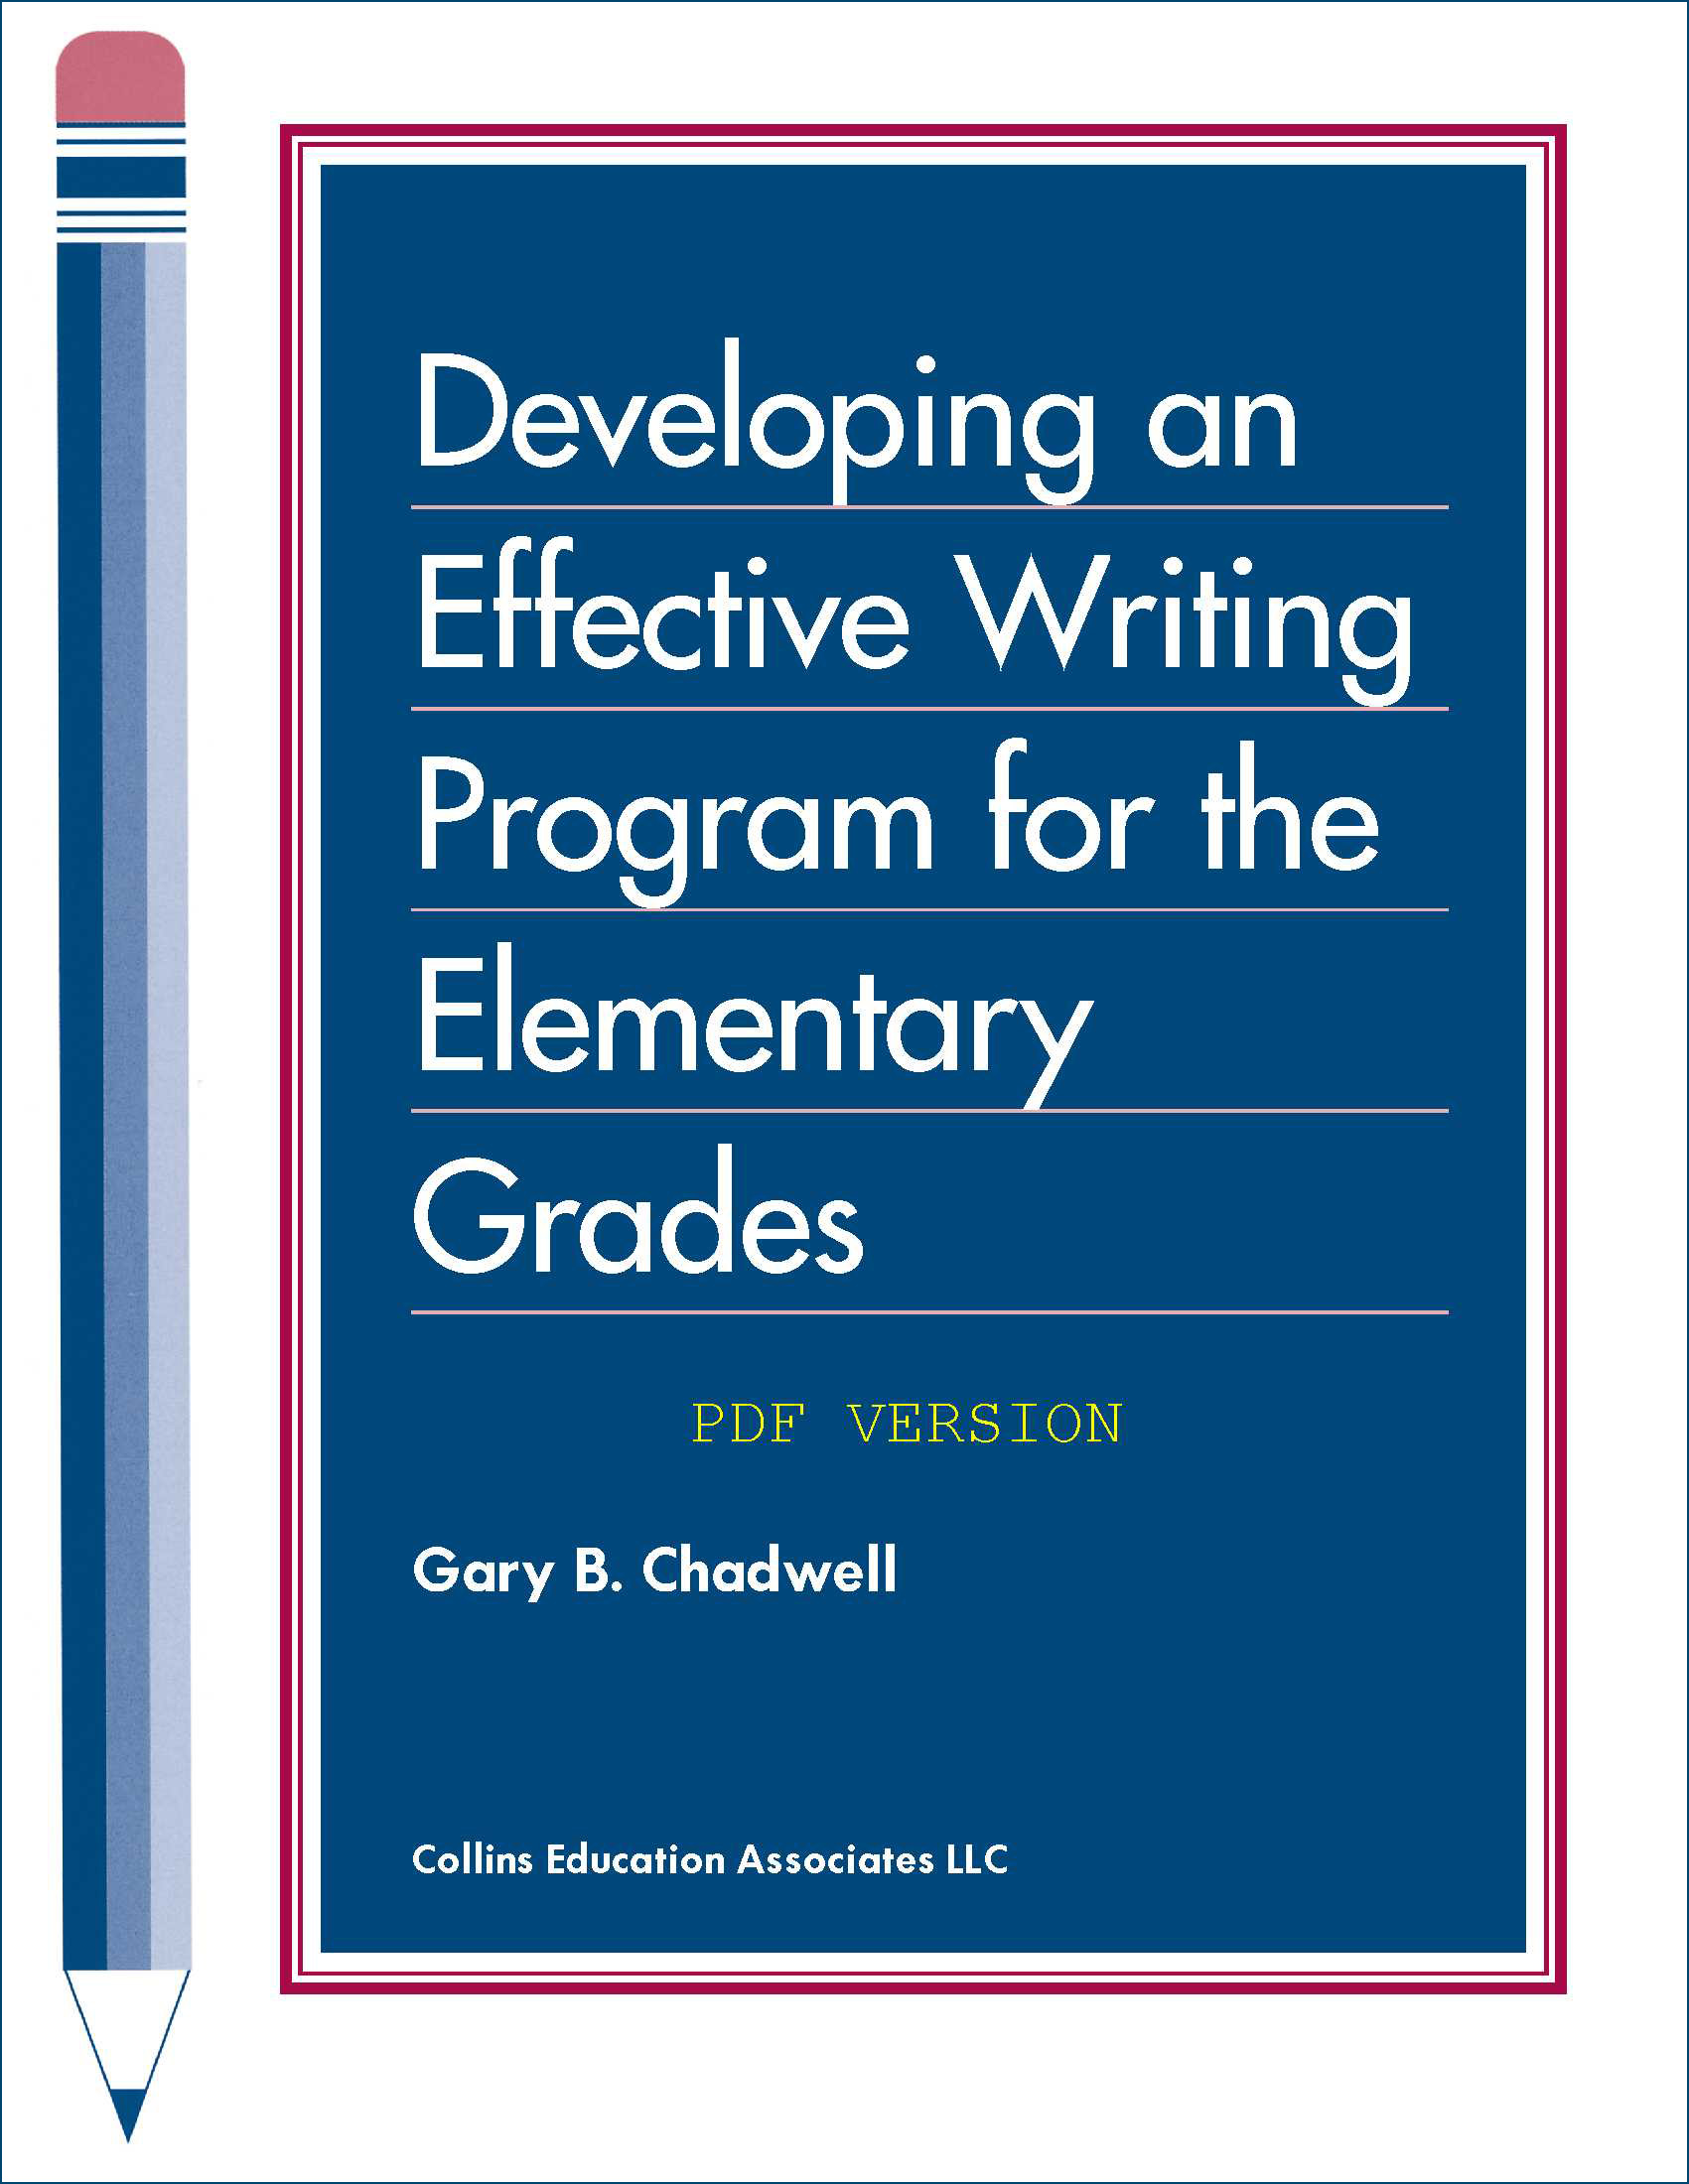 Developing an Effective Writing Program for the Elementary Grades (PDF)